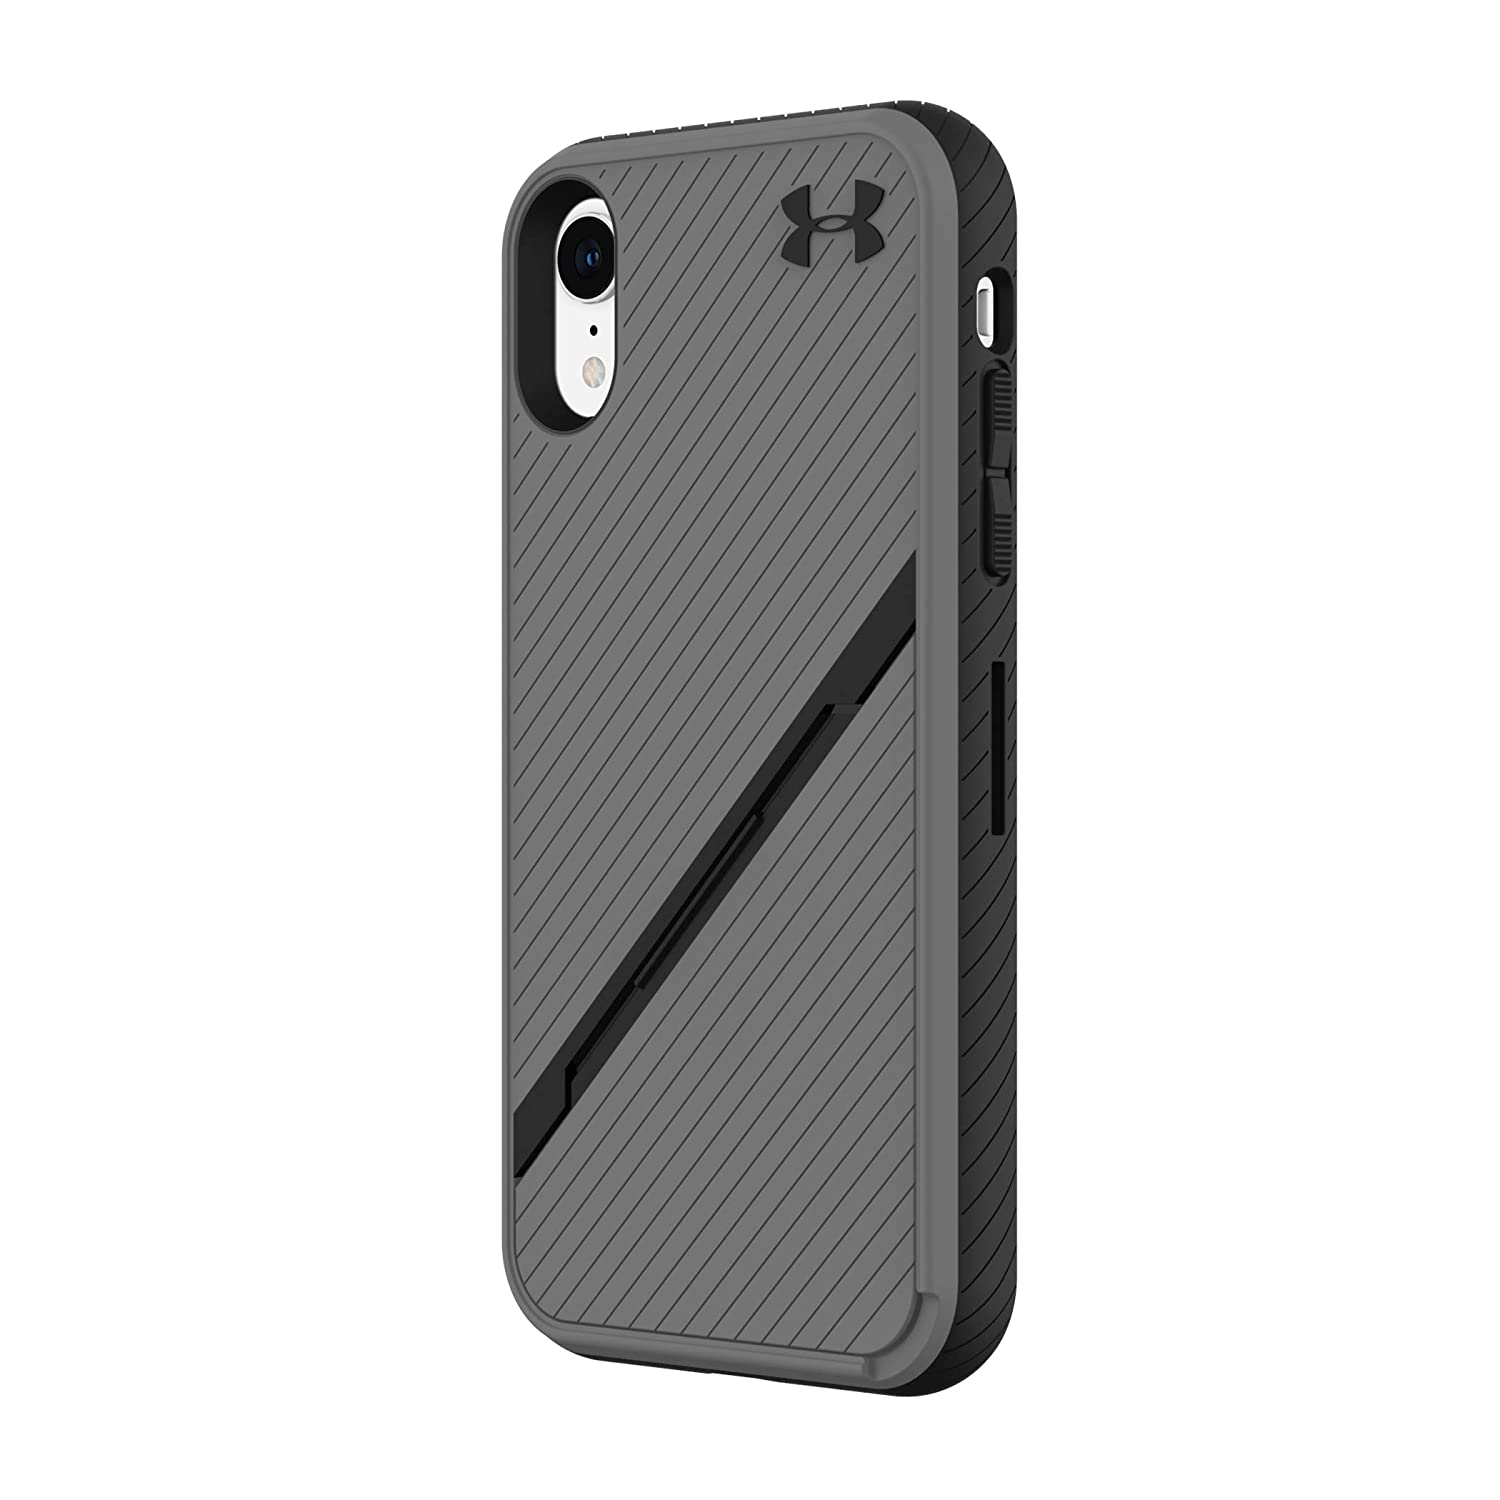 Under Armour Phone Case | for Apple iPhone XR | Under Armour UA Protect Kickstash Case with Rugged Design and Drop Protection - Graphite/Black